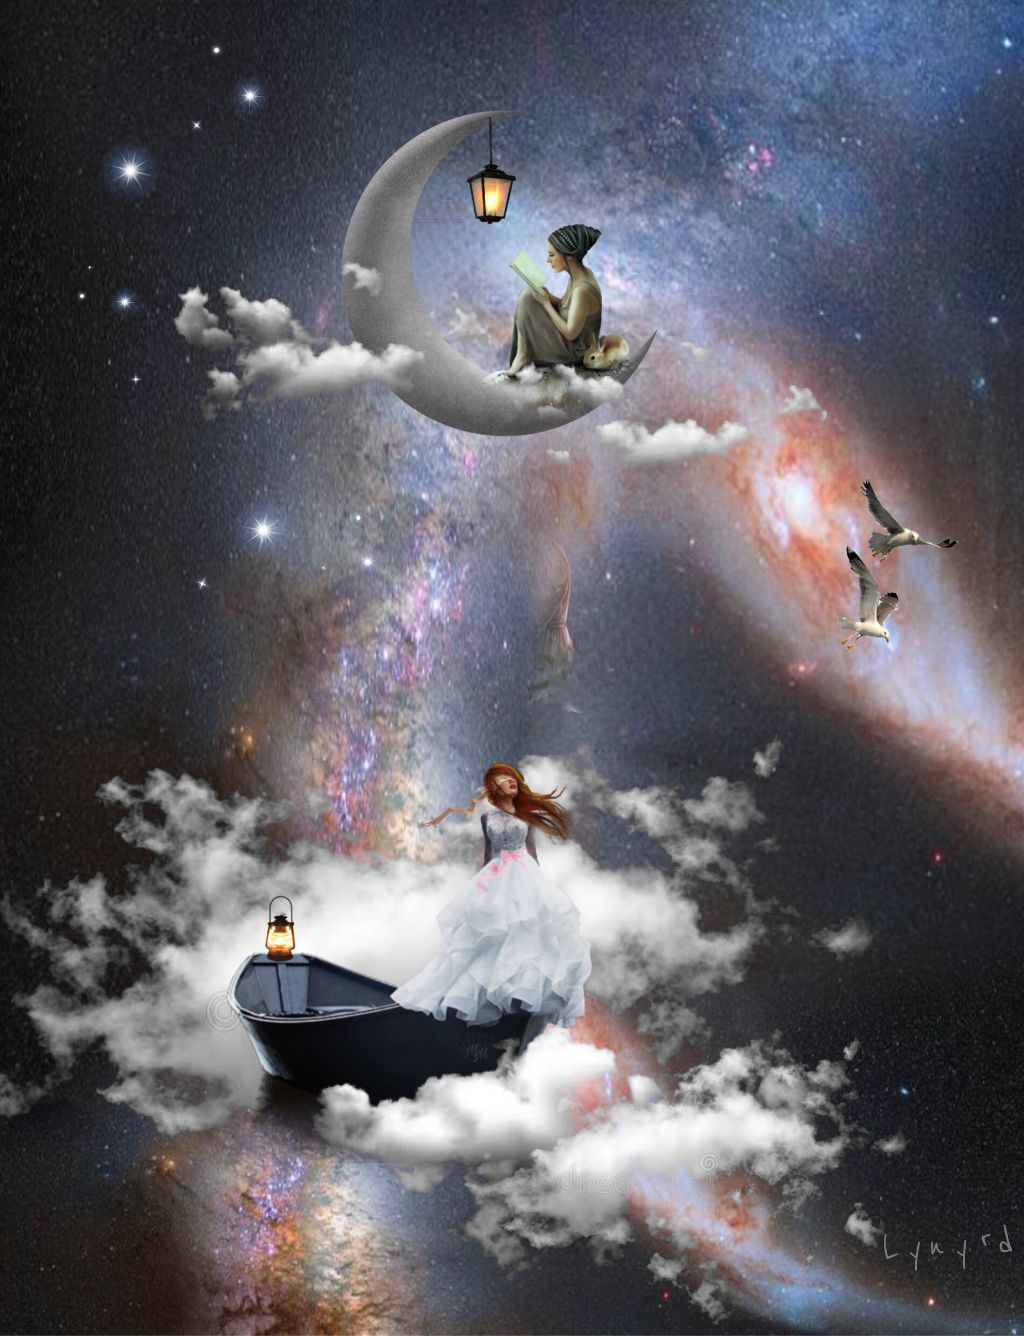 #freetoedit #fantasy #art #dream #myedit #awesome #surrealism #madewithpicsart #awesomestickers